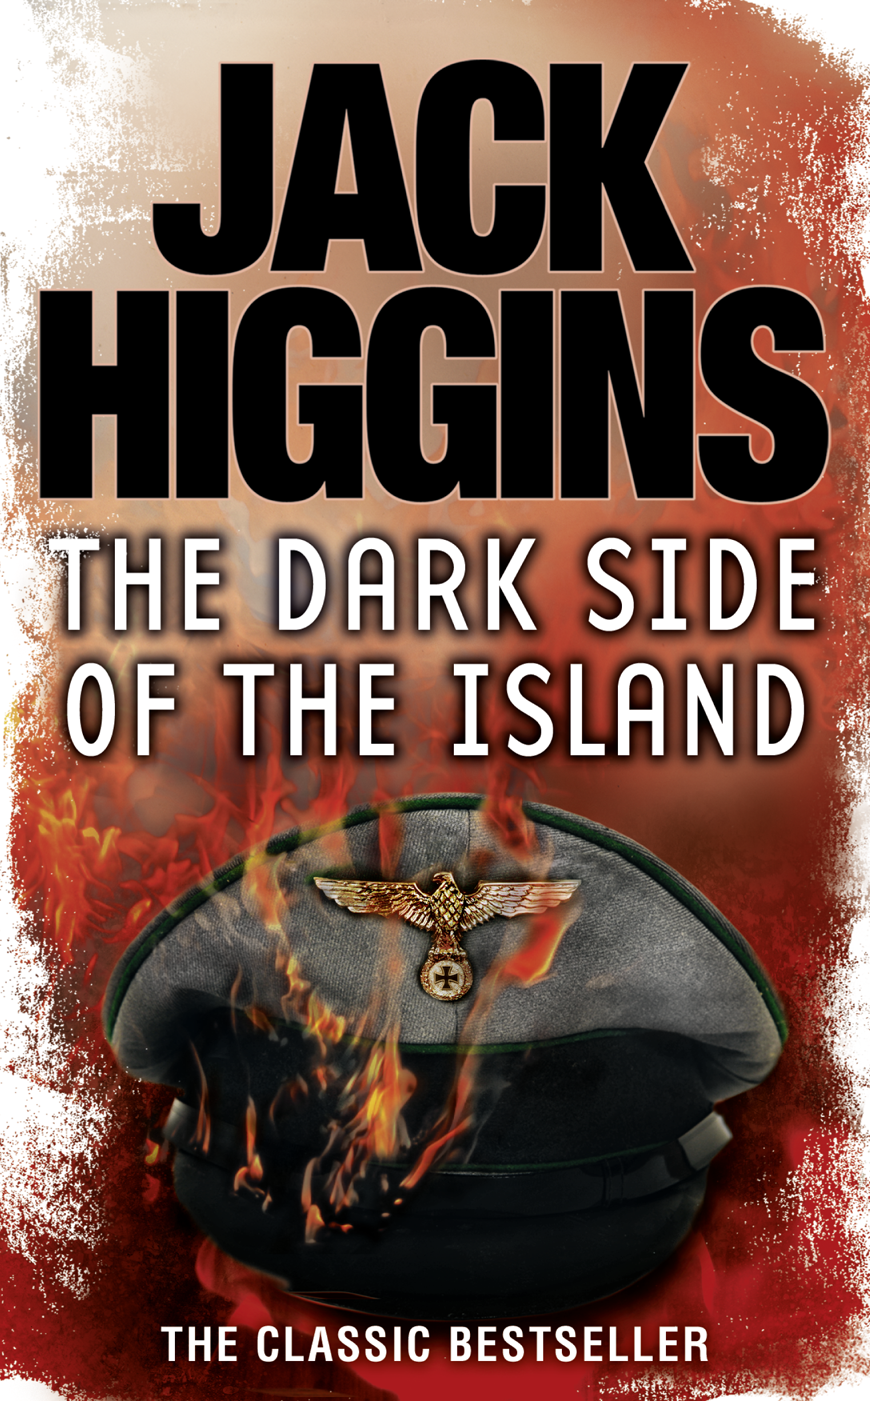 Jack Higgins The Dark Side of the Island